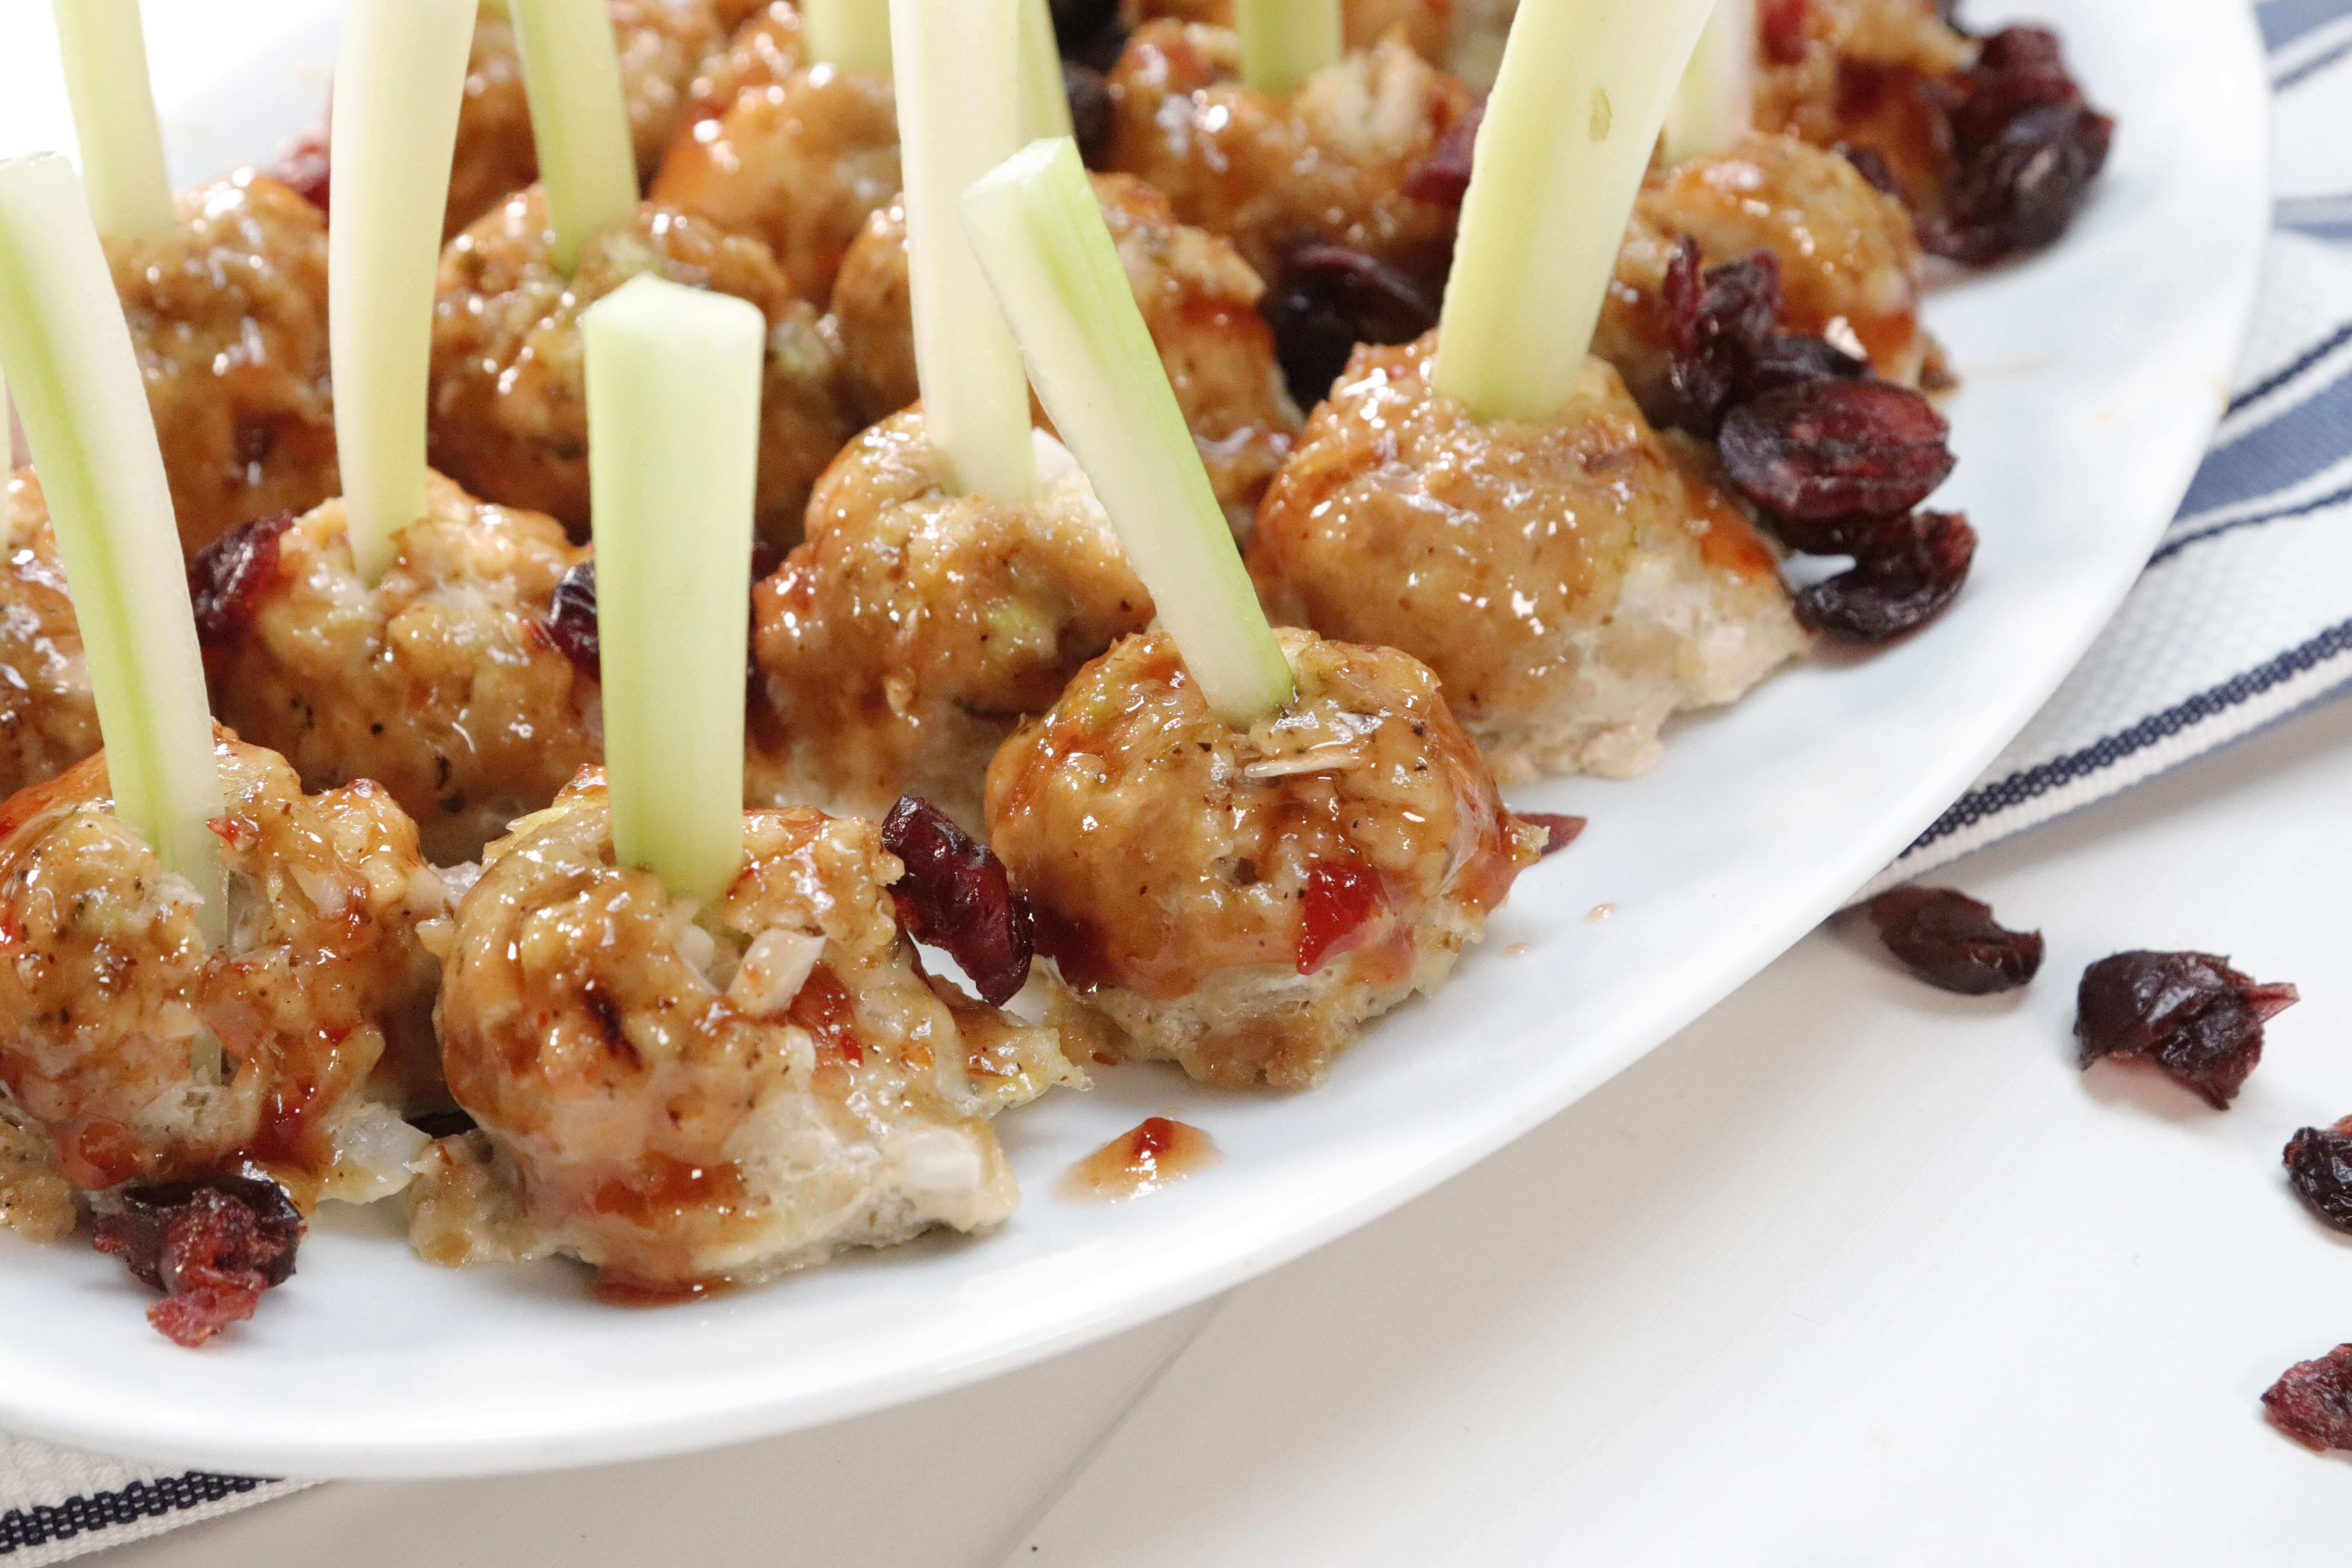 Turkey Meatballs And Celery With Cranberry Chili Sauce